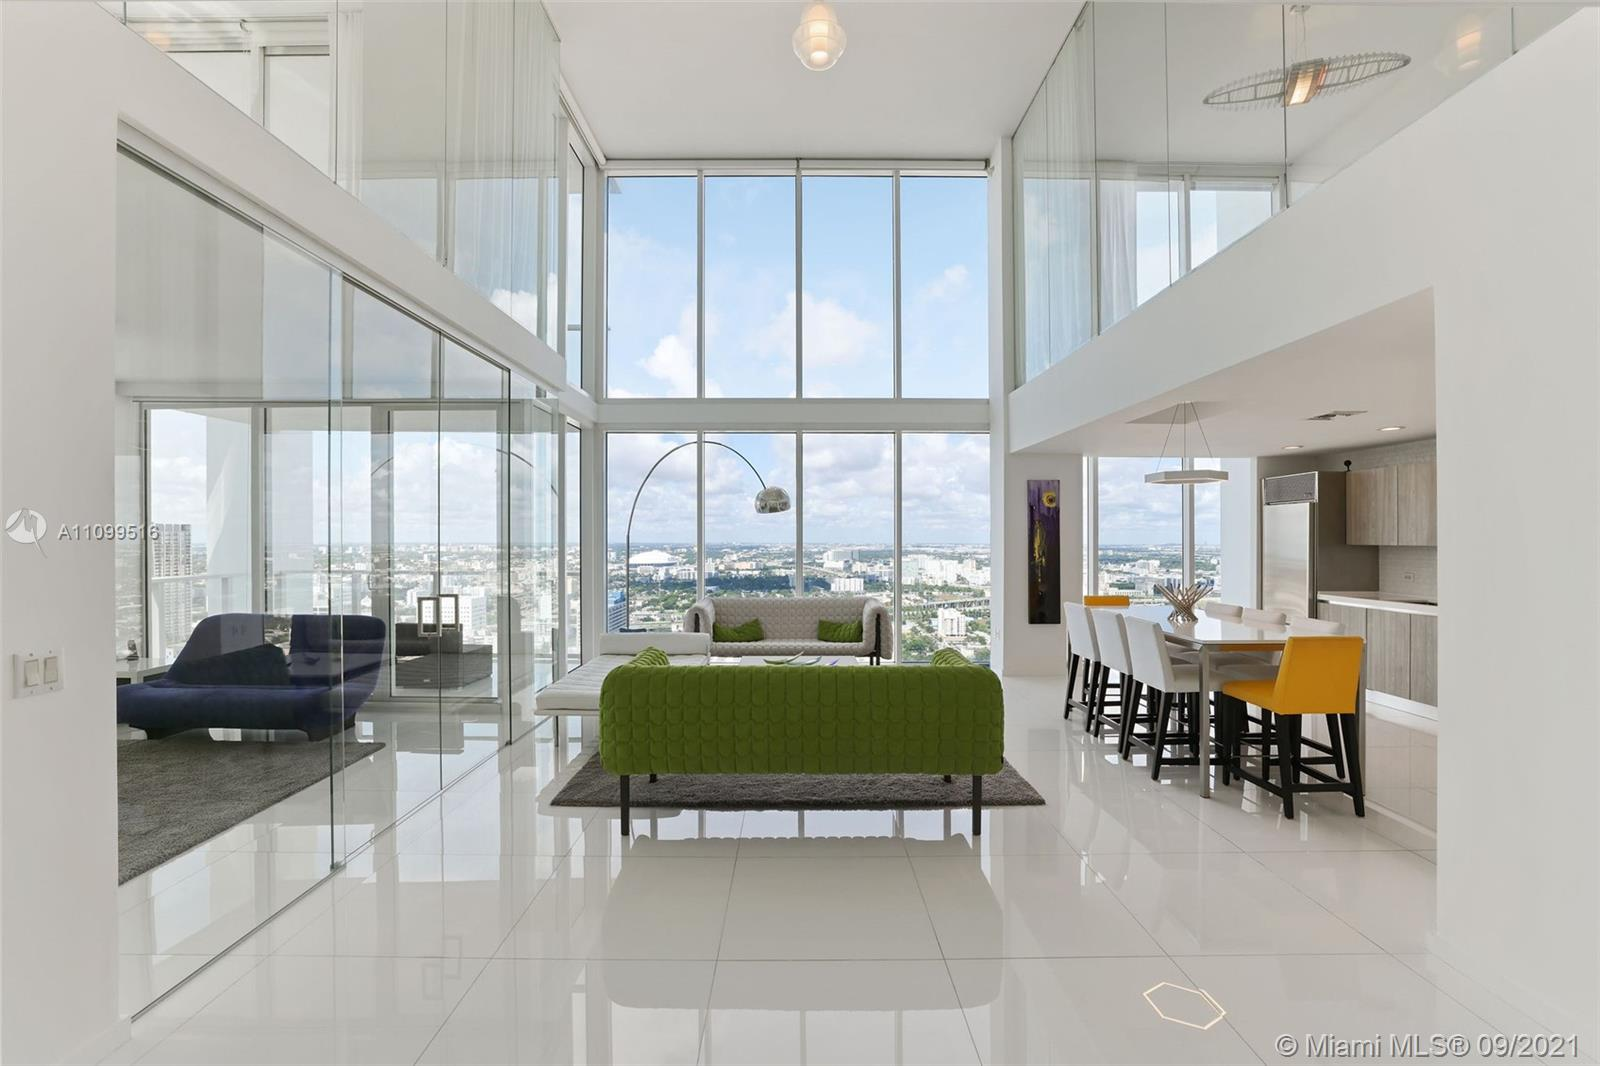 Welcome to one of the most spectacular tower suite lofts in the very boutique Ten Museum Park, located in the heart of Downtown Miami. No expense spared in this fully remodeled 3 BD 3 BA masterpiece in the sky. Brand new kitchen and bathrooms, new staircase, Glass enclosed Den into a 3rd bedroom, motorized window treatments, and so much more! Must see to appreciate all the natural light beaming through the 20 ft walls of glass. Unwind with a glass of wine into your very own dipping pool. Unmatched location with spectacular growth potential. Make this home in the sky yours before it's gone!